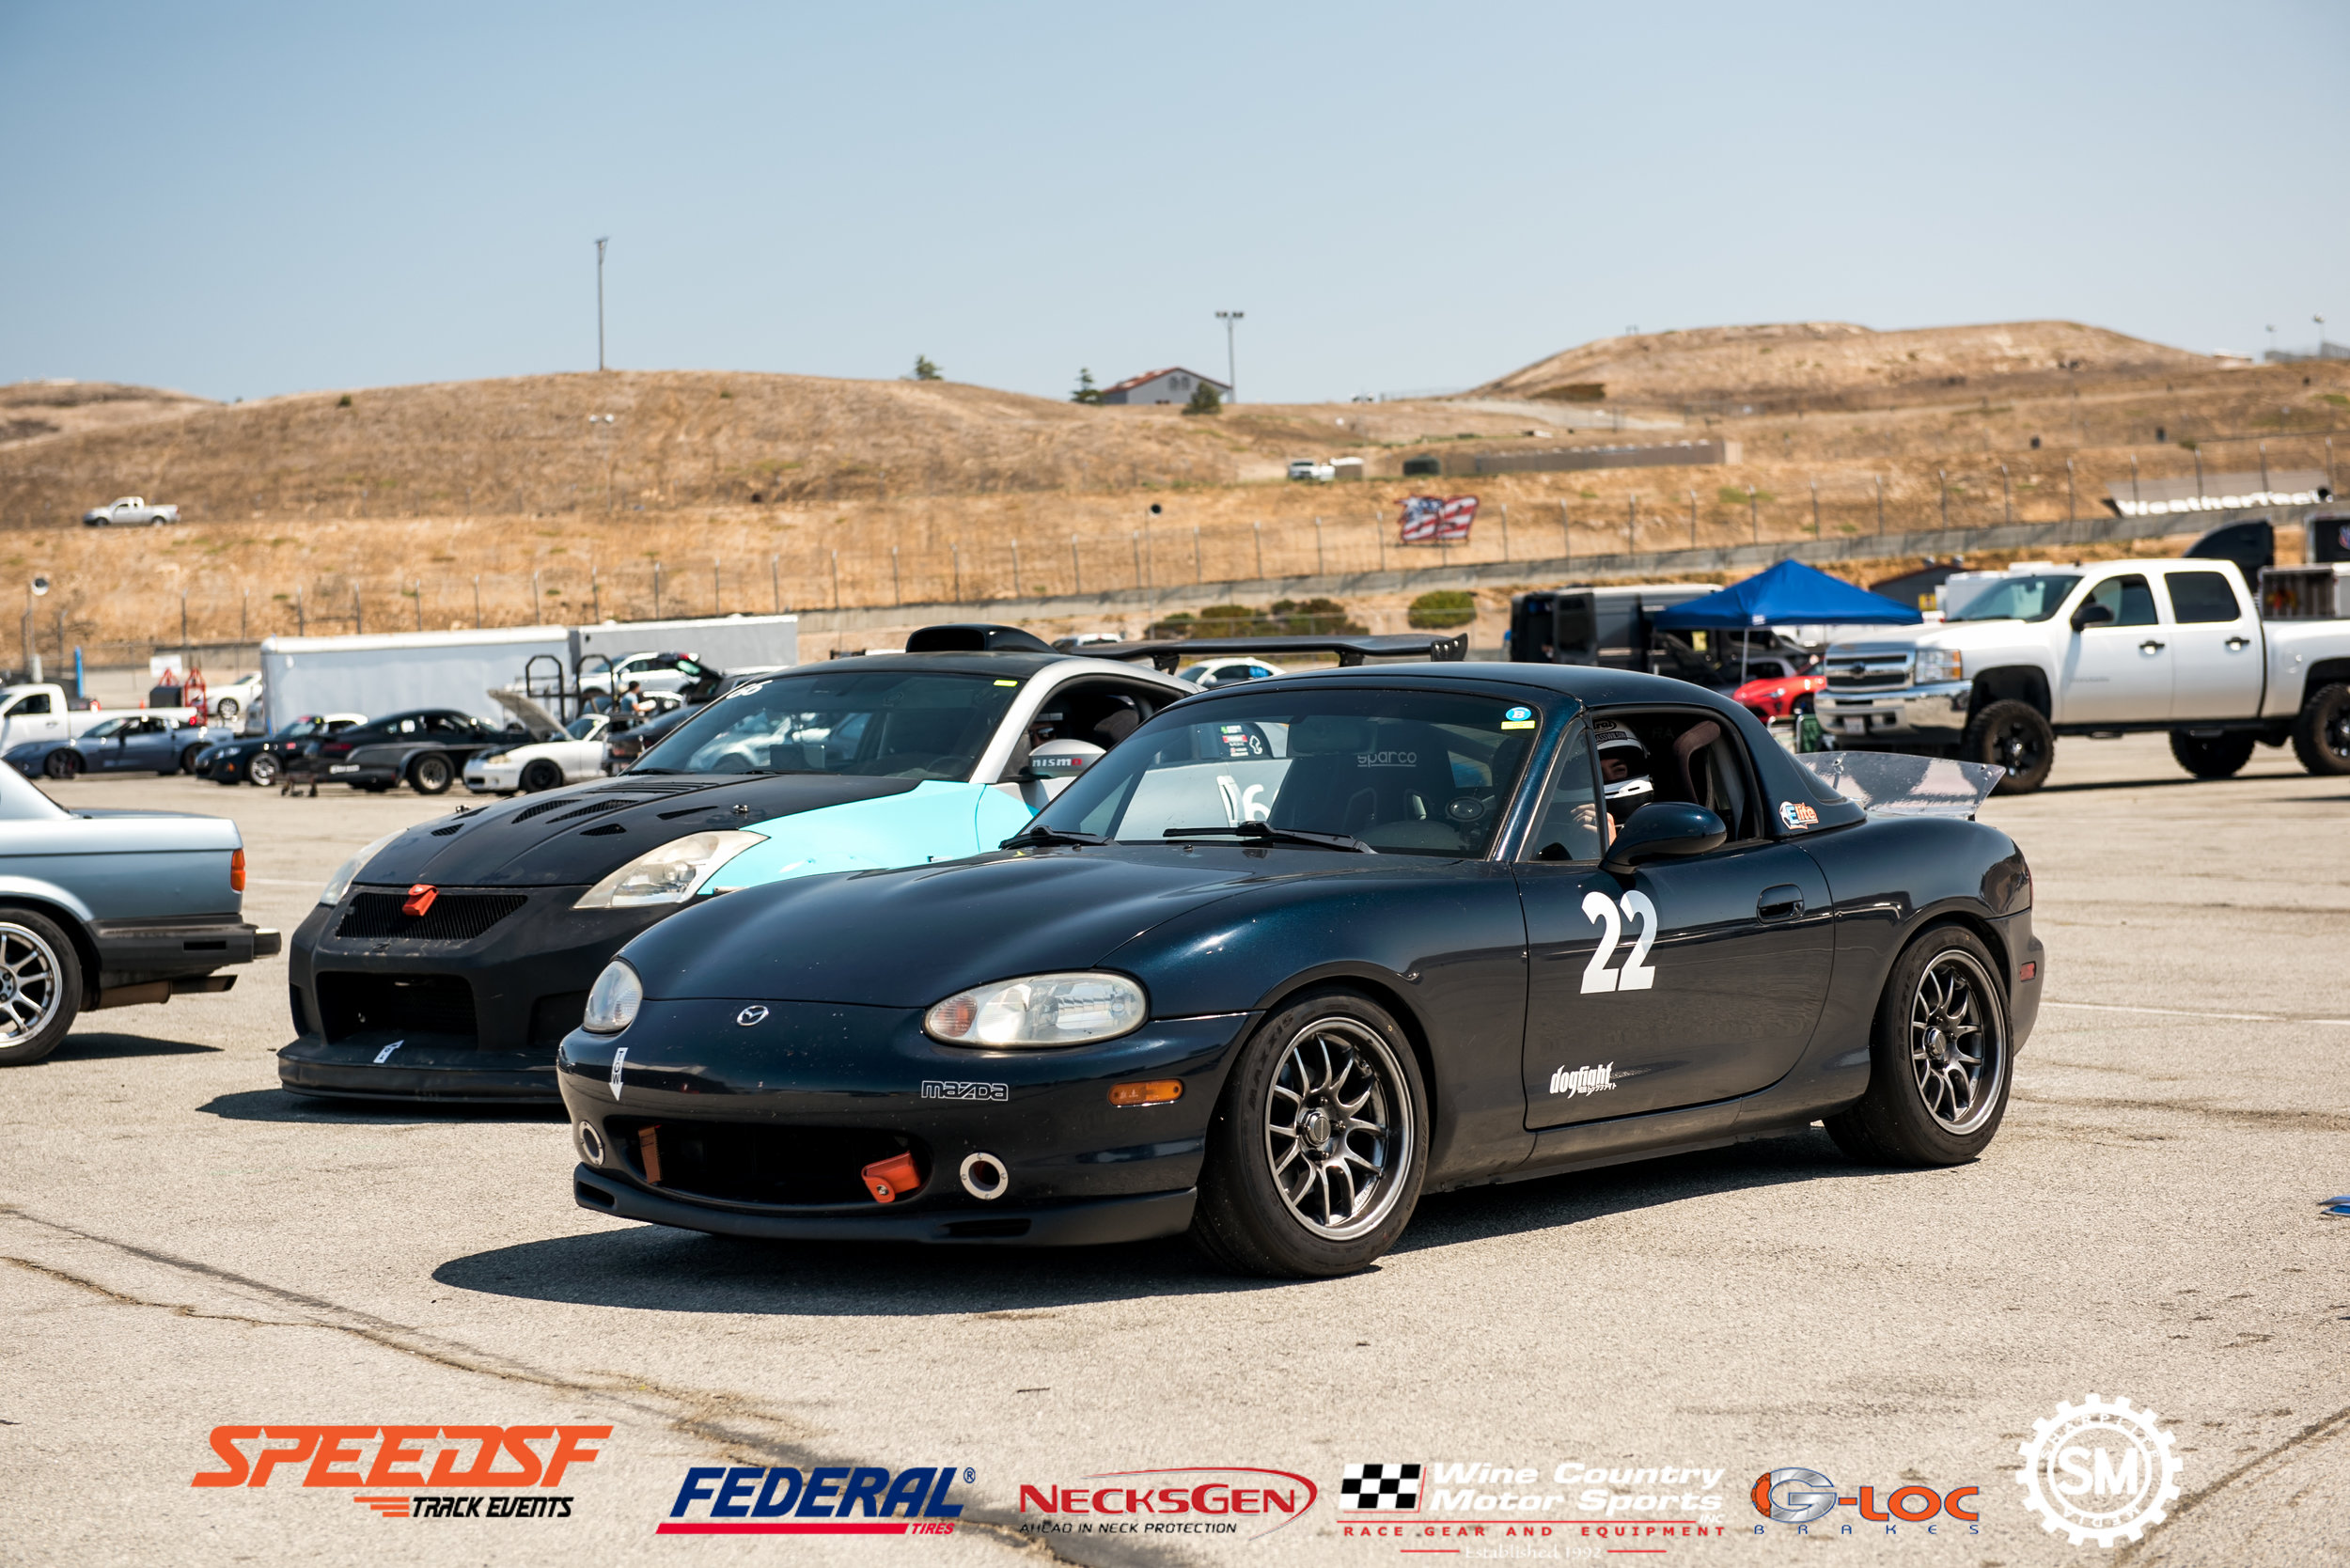 SpeedSF Paddock Sunday-47.jpg